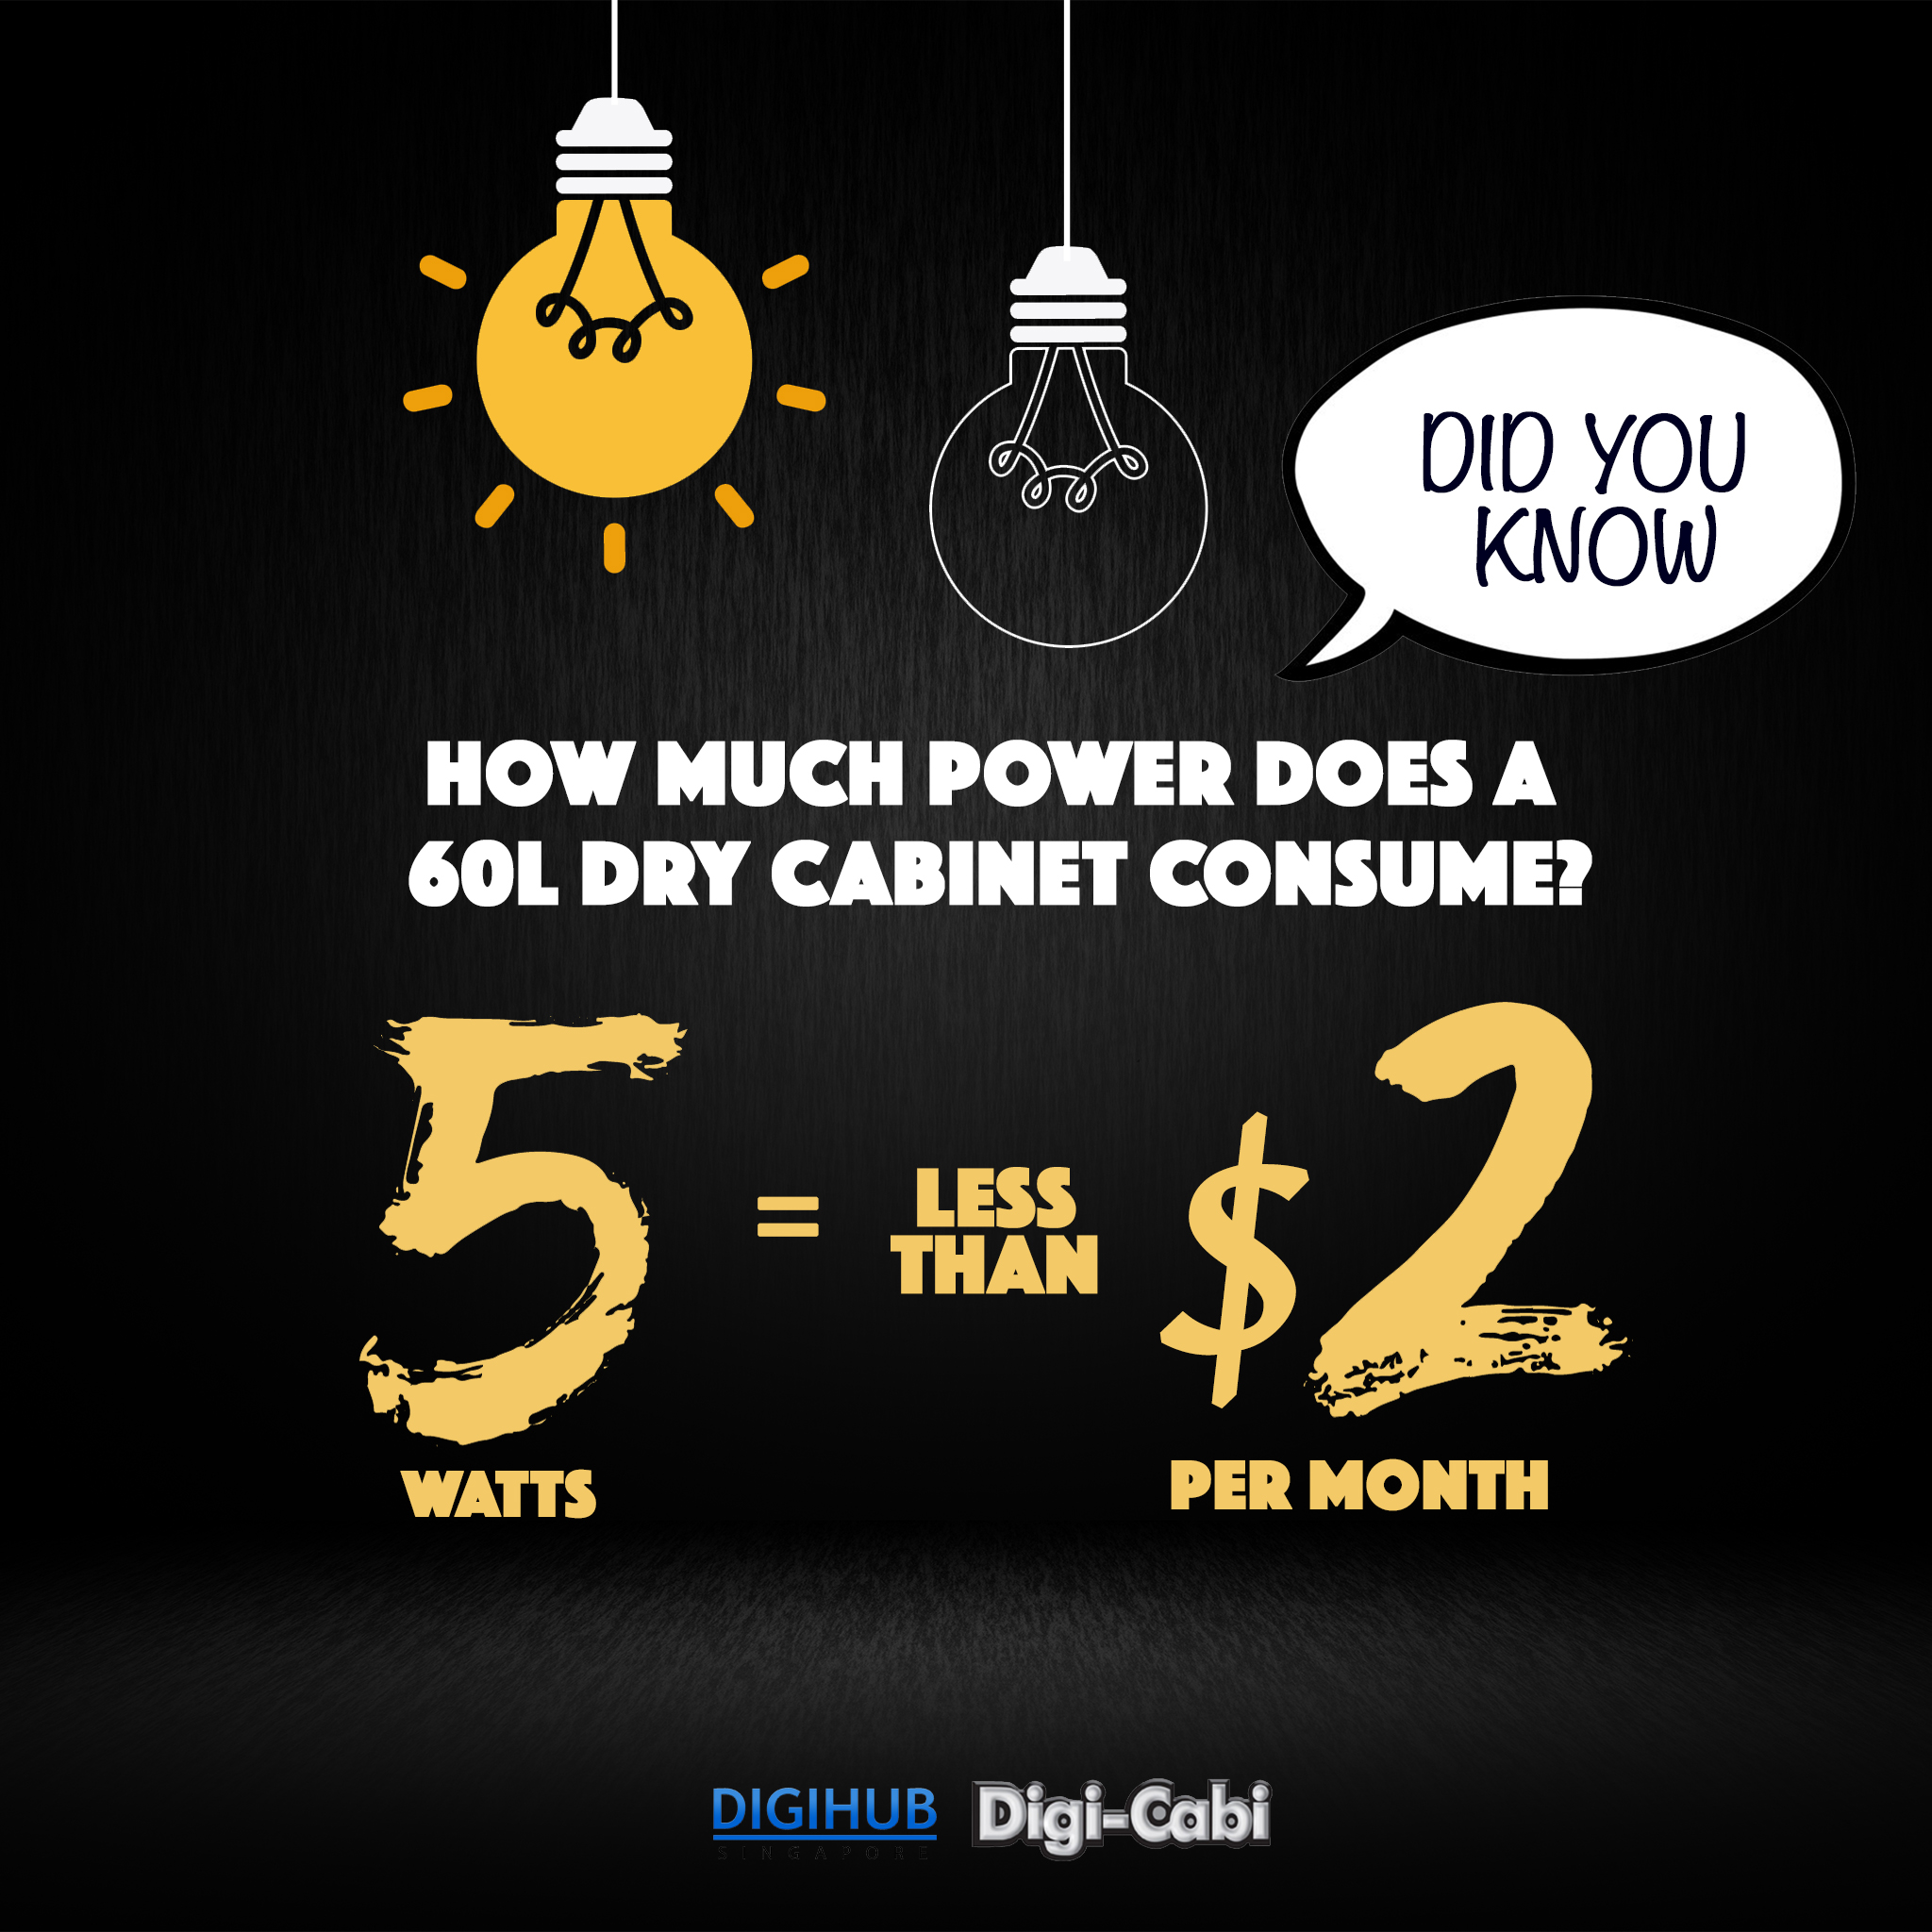 How Much Power Does Your Dry Cabinet Consume?